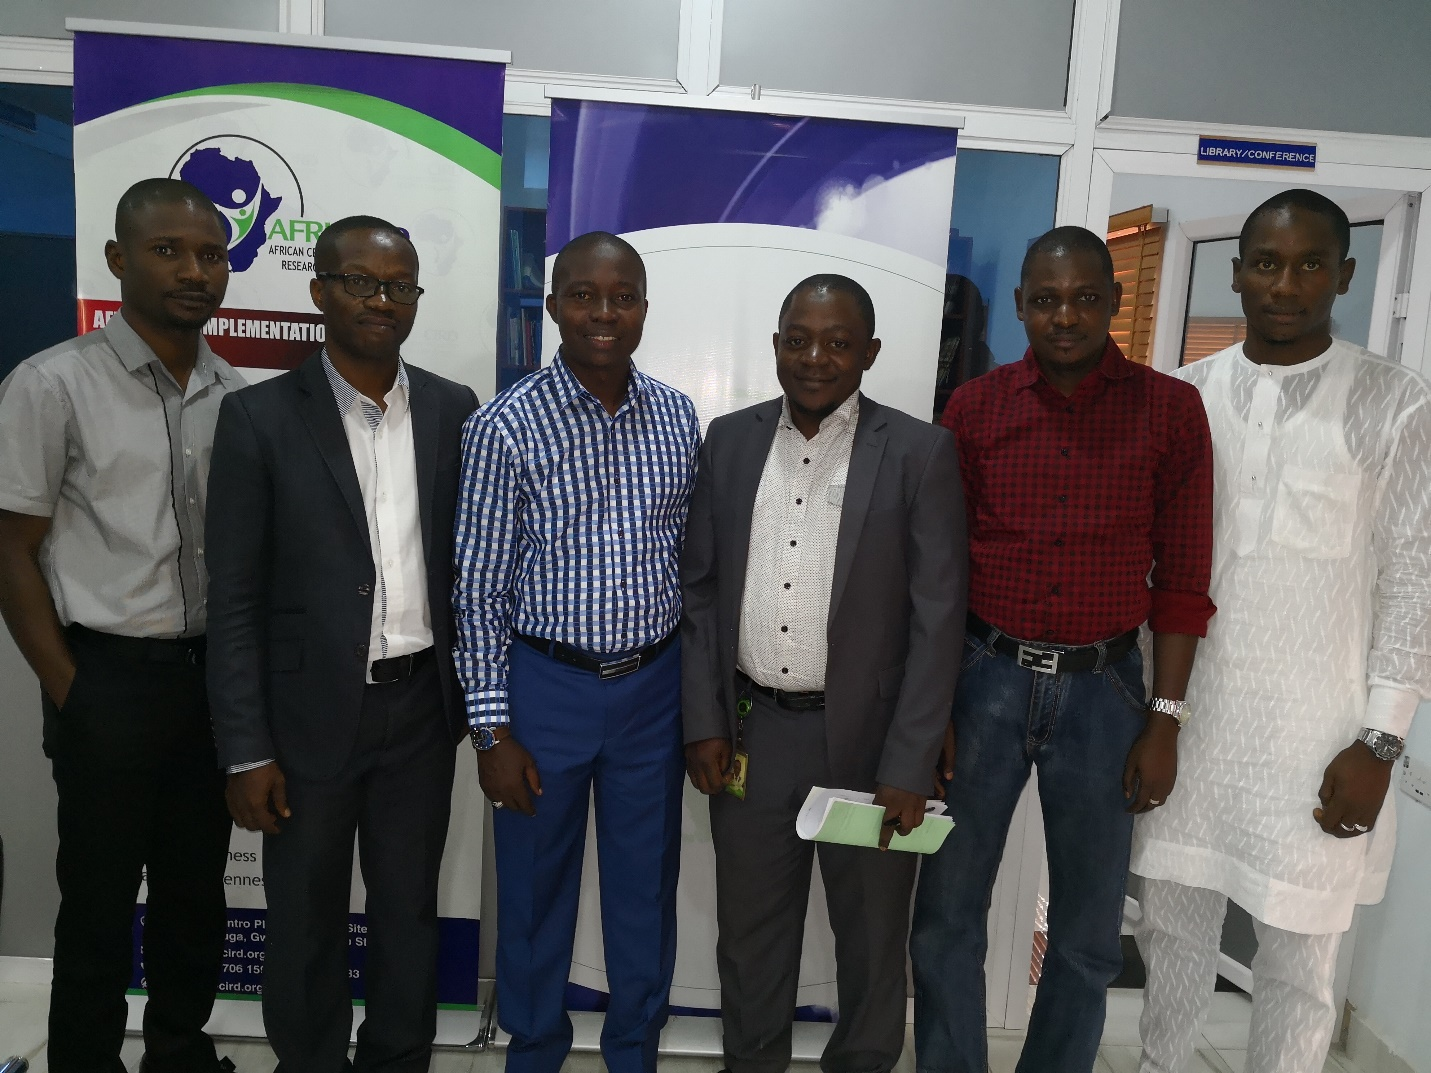 Heritage Bank Visits African Centre for Innovative Research and Development (AFRI – CIRD)